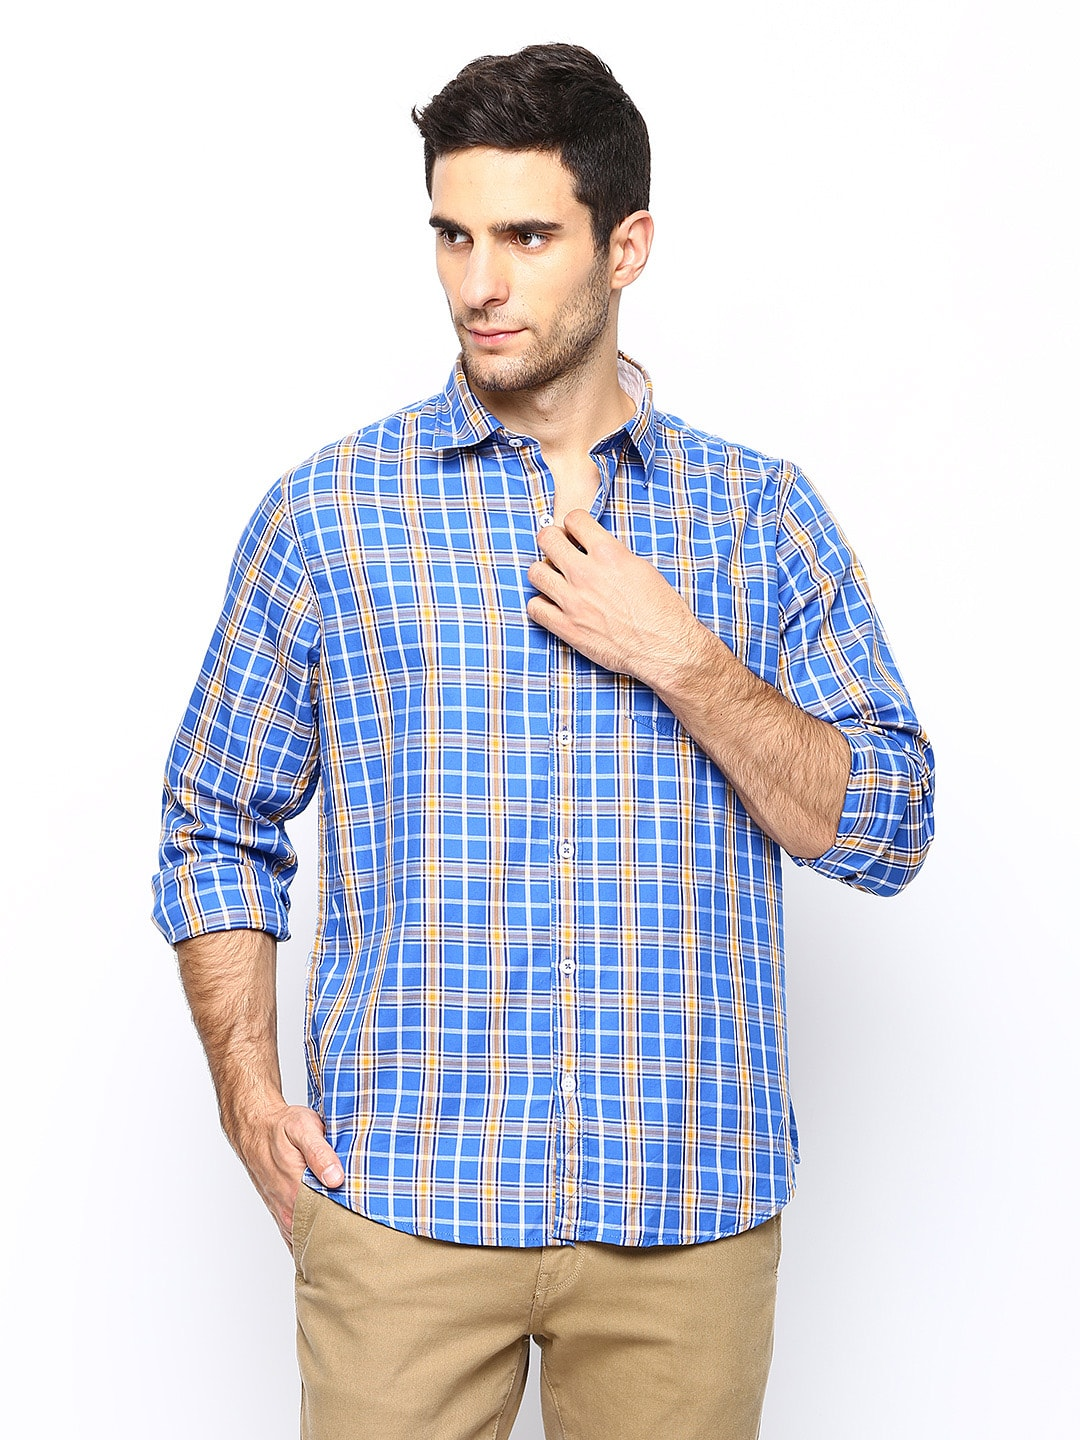 Oxemberg Oxemberg Men Blue Checked Casual Shirt